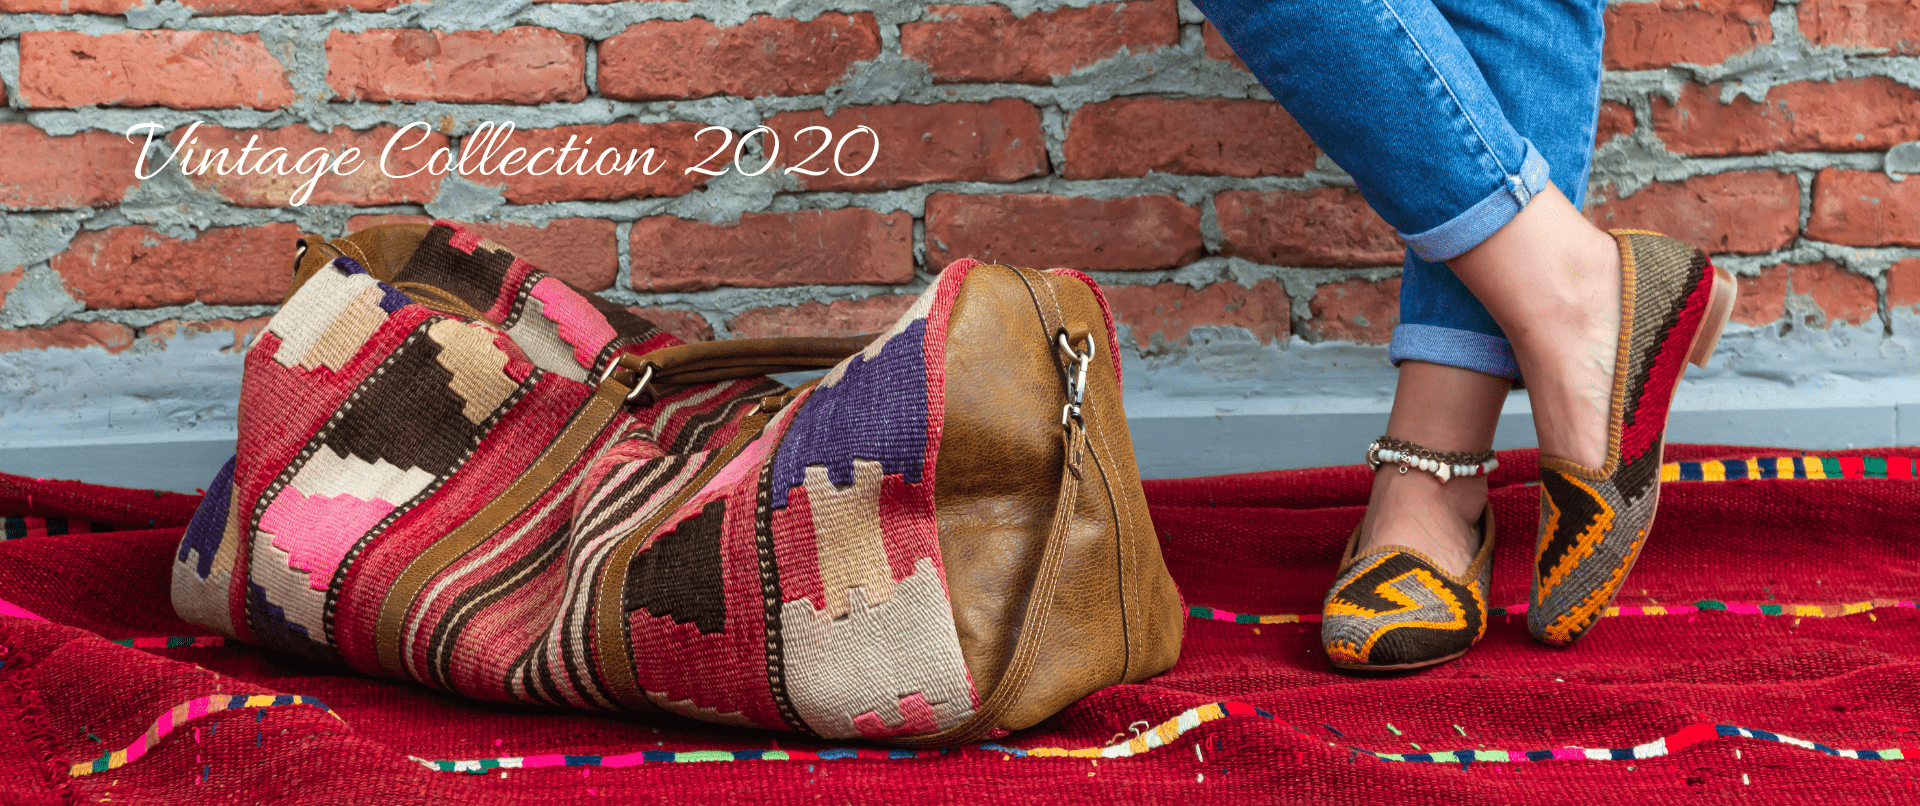 Handcrafted Shoes and Bags